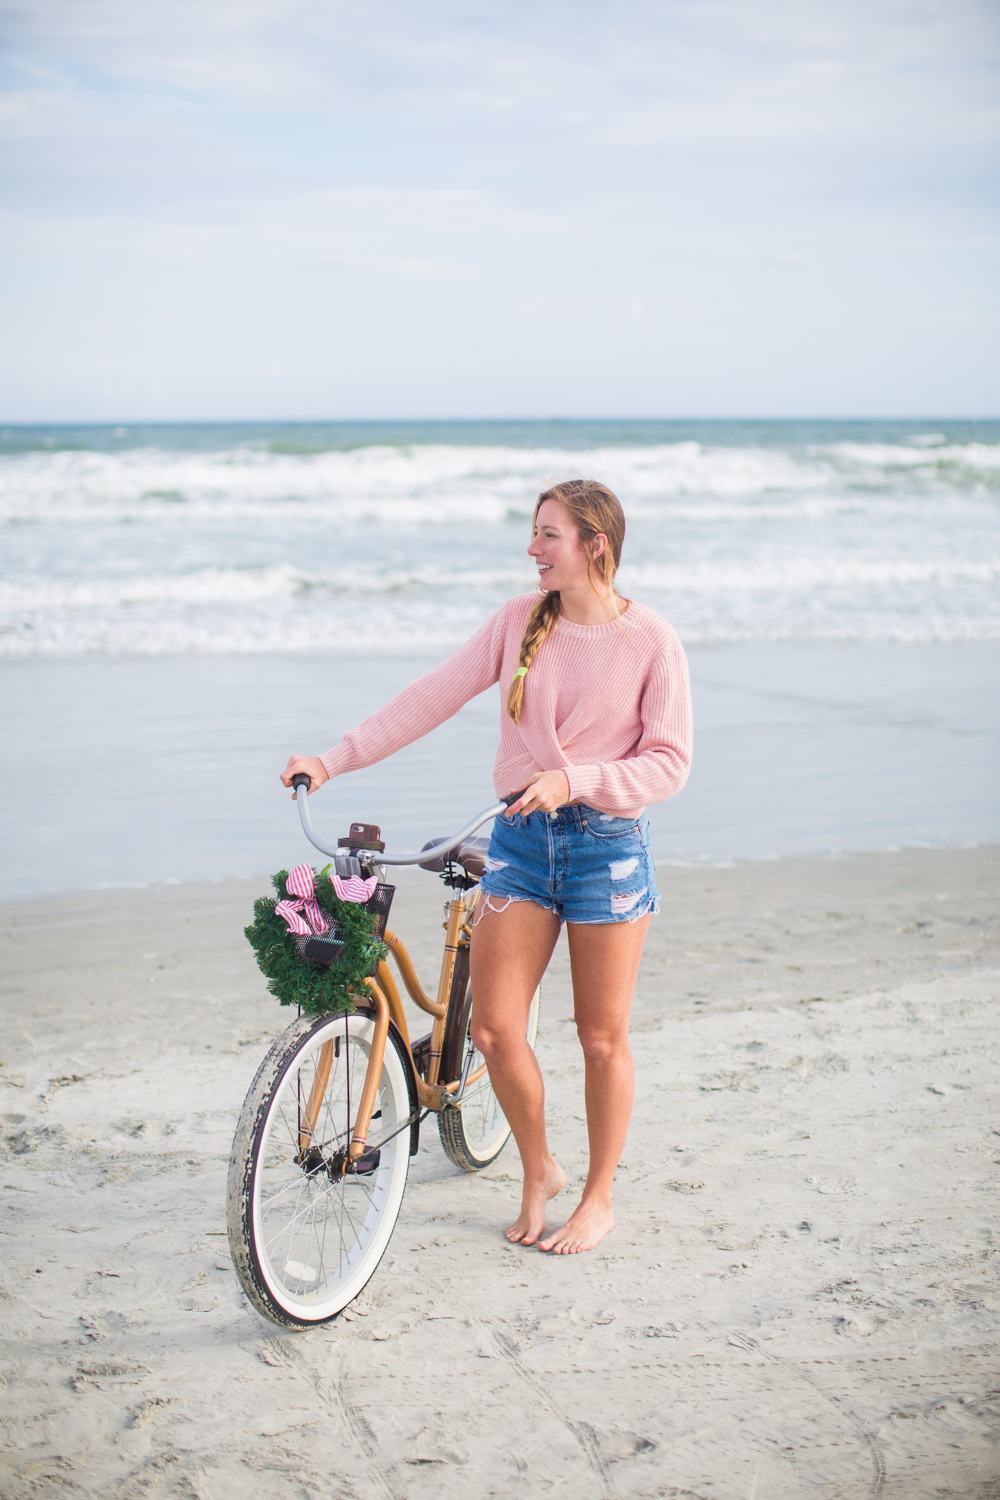 Sweaters to Wear During the Holiday Season | Beach Bike Ride | Winter Outfit Ideas | Christmas in Florida | Beach Bike Ride | Cropped Pink Sweater | Twisted Back Sweater | Winter Sweater Outfit